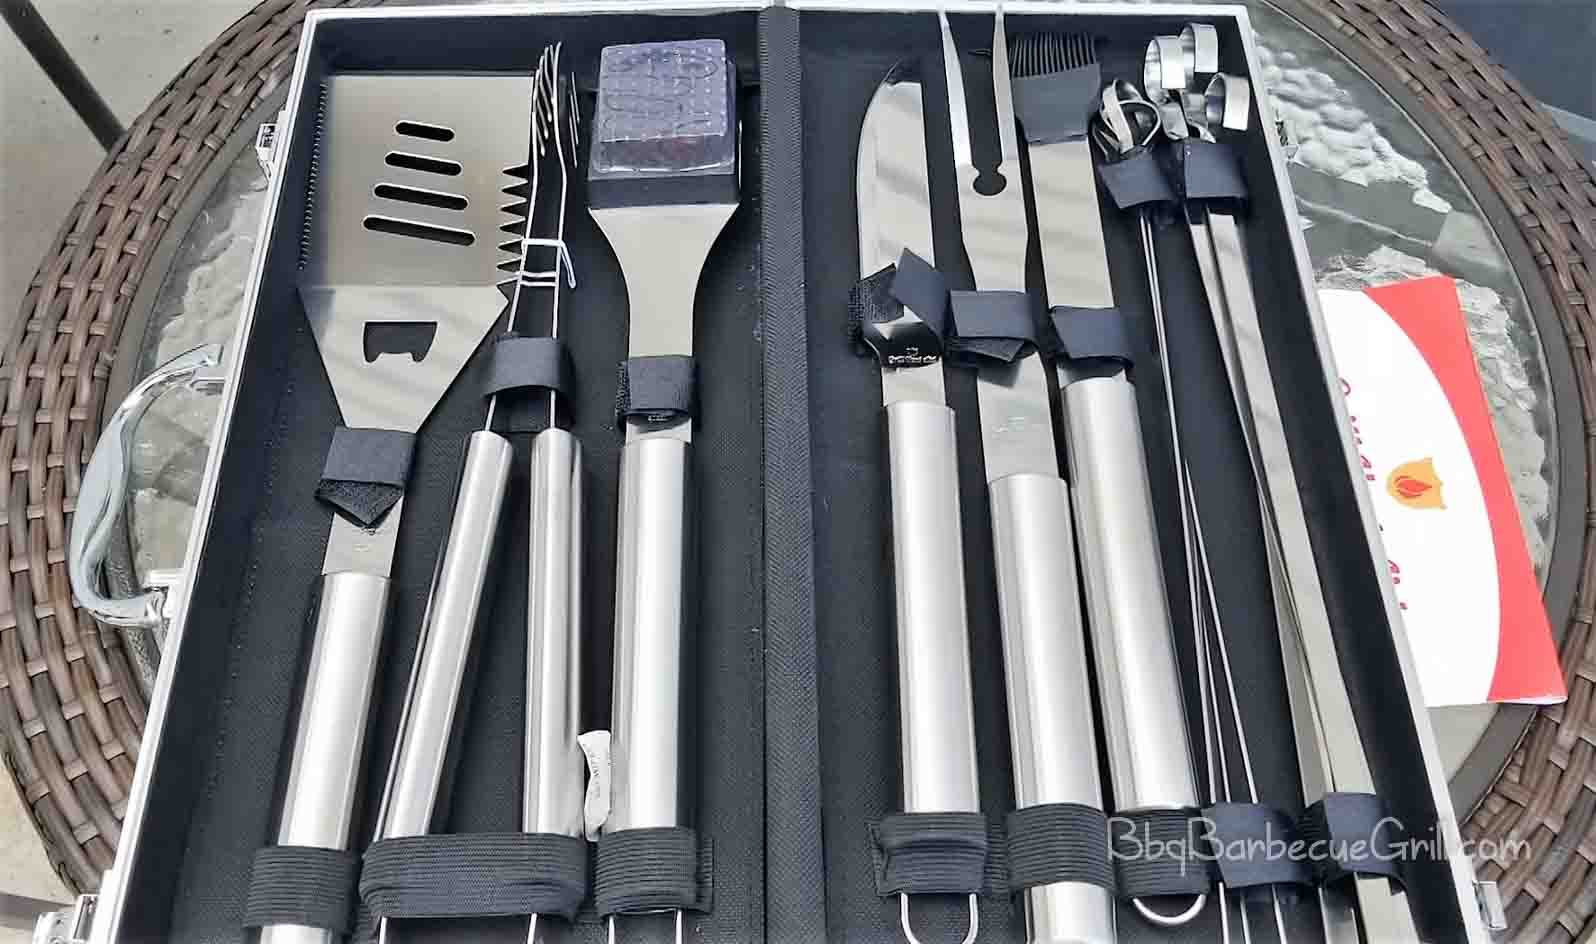 Best professional bbq tools